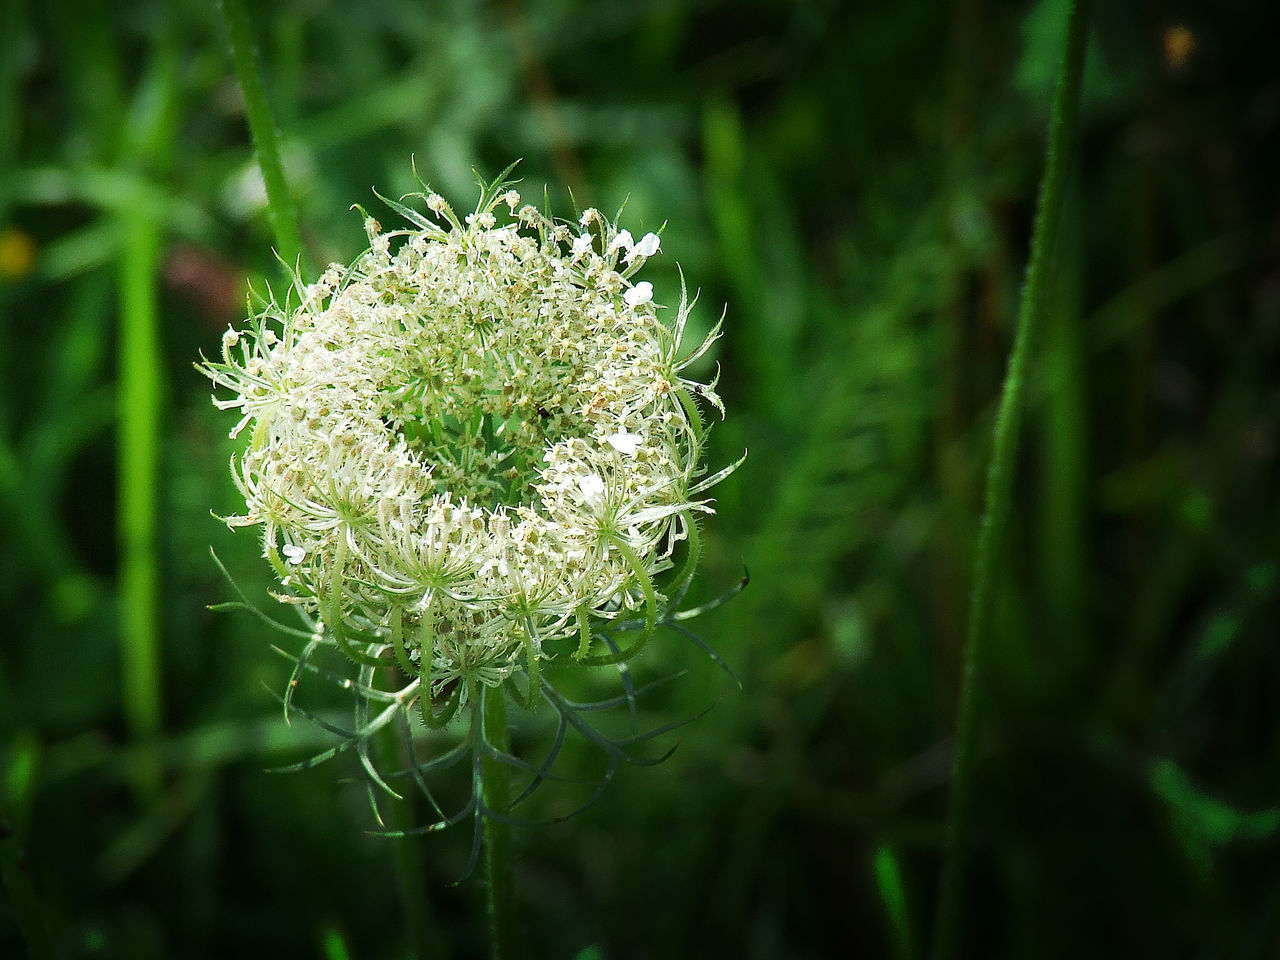 green color, nature, growth, flower, beauty in nature, plant, close-up, no people, focus on foreground, outdoors, day, fragility, flower head, freshness, thistle